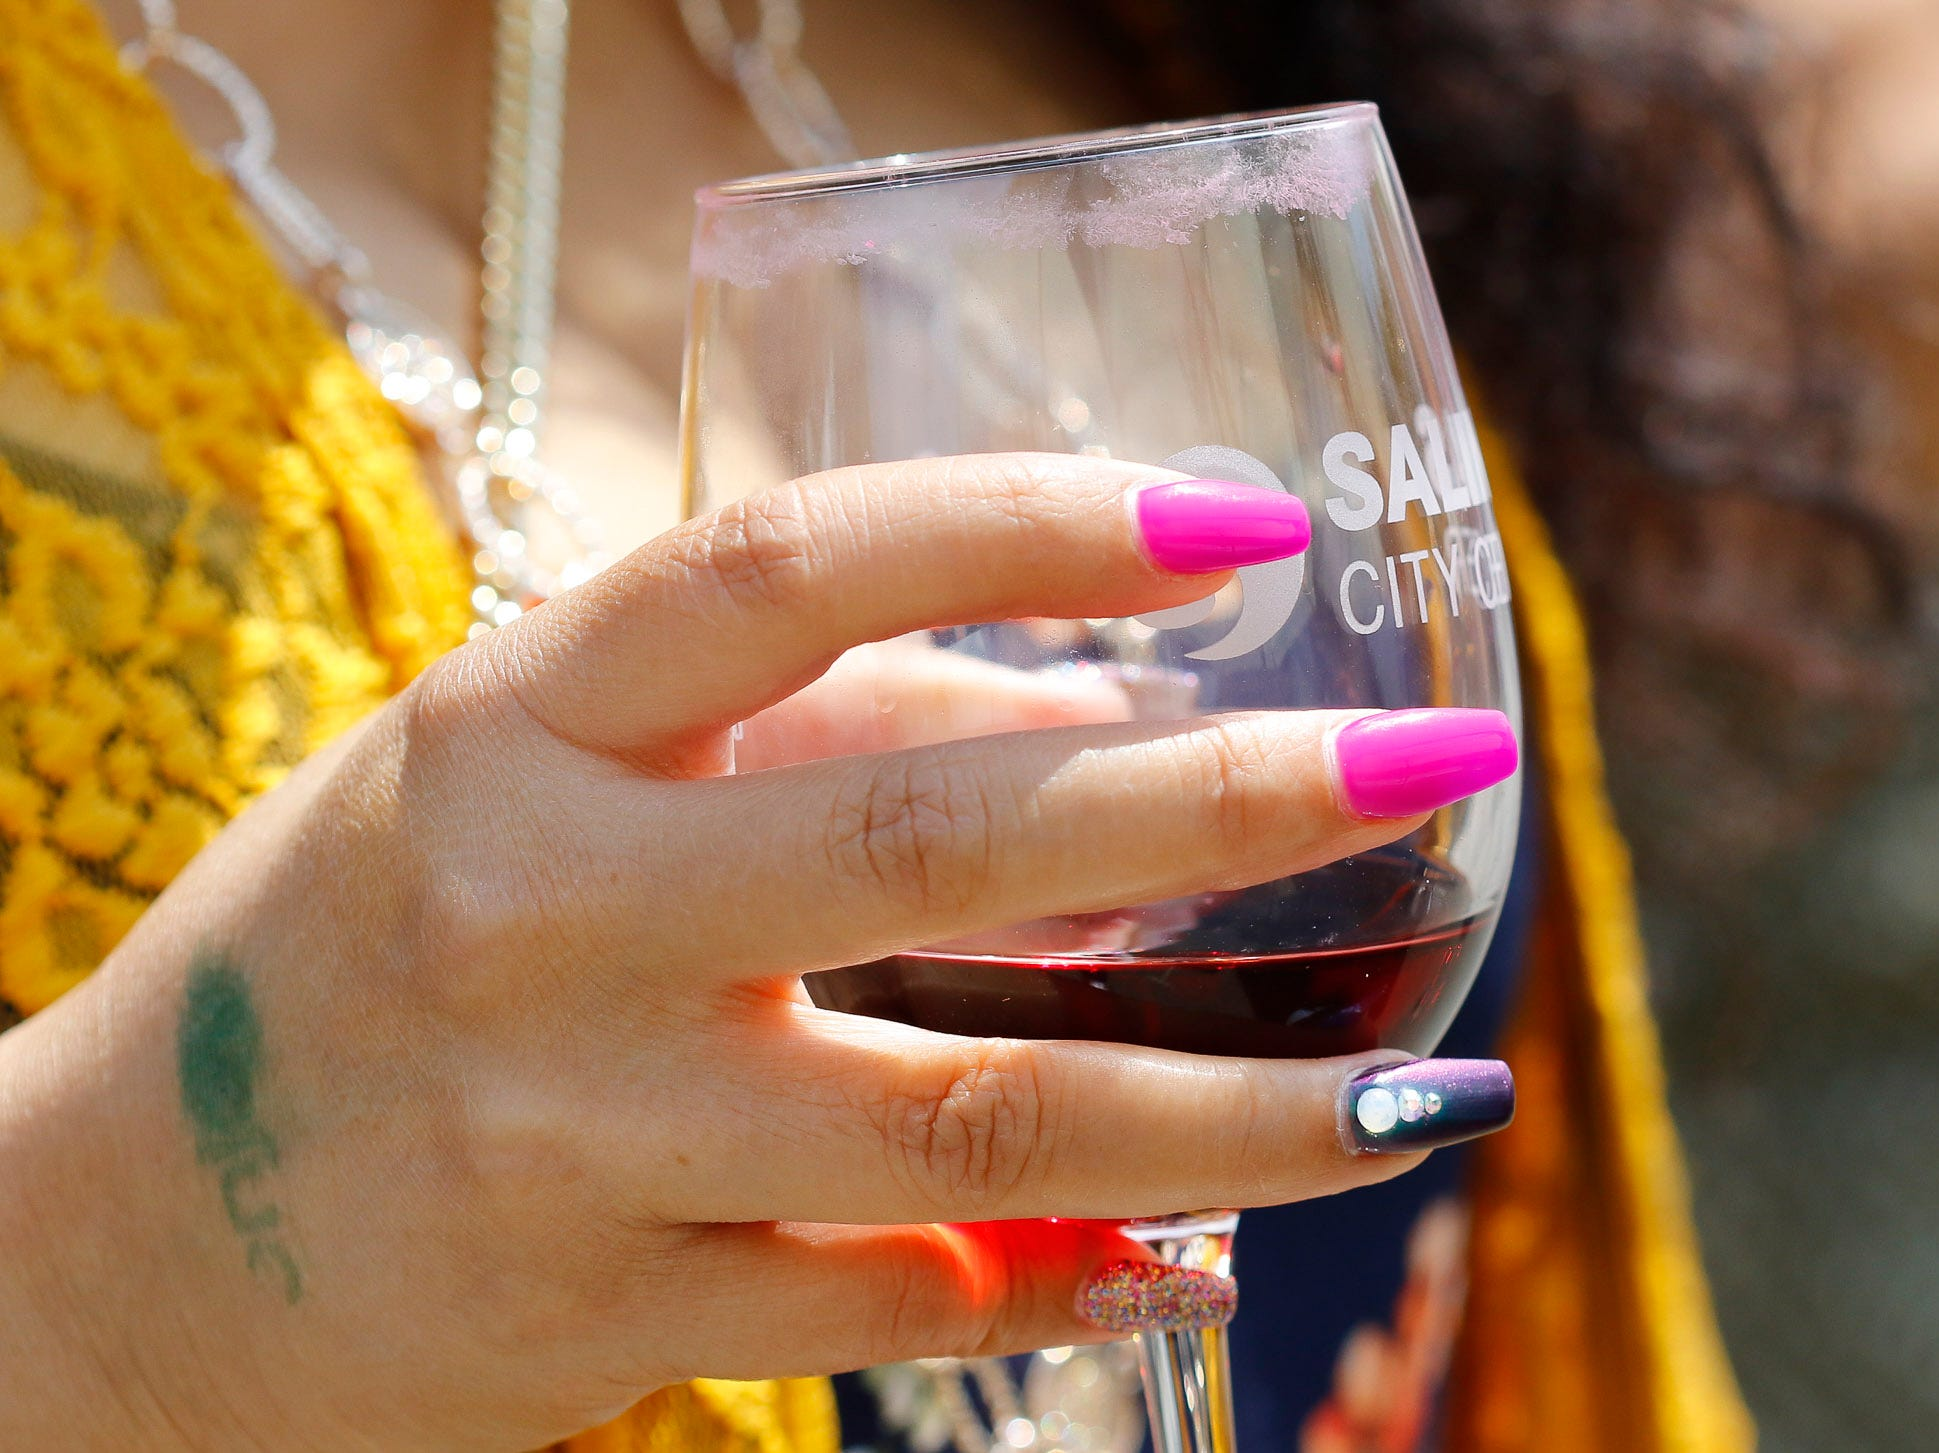 A woman walks while holding her wine sampling glass during the 2018 Salinas Valley Food and Wine Festival which takes place on Main Street in Old Town Salinas on Saturday, August 11, 2018.